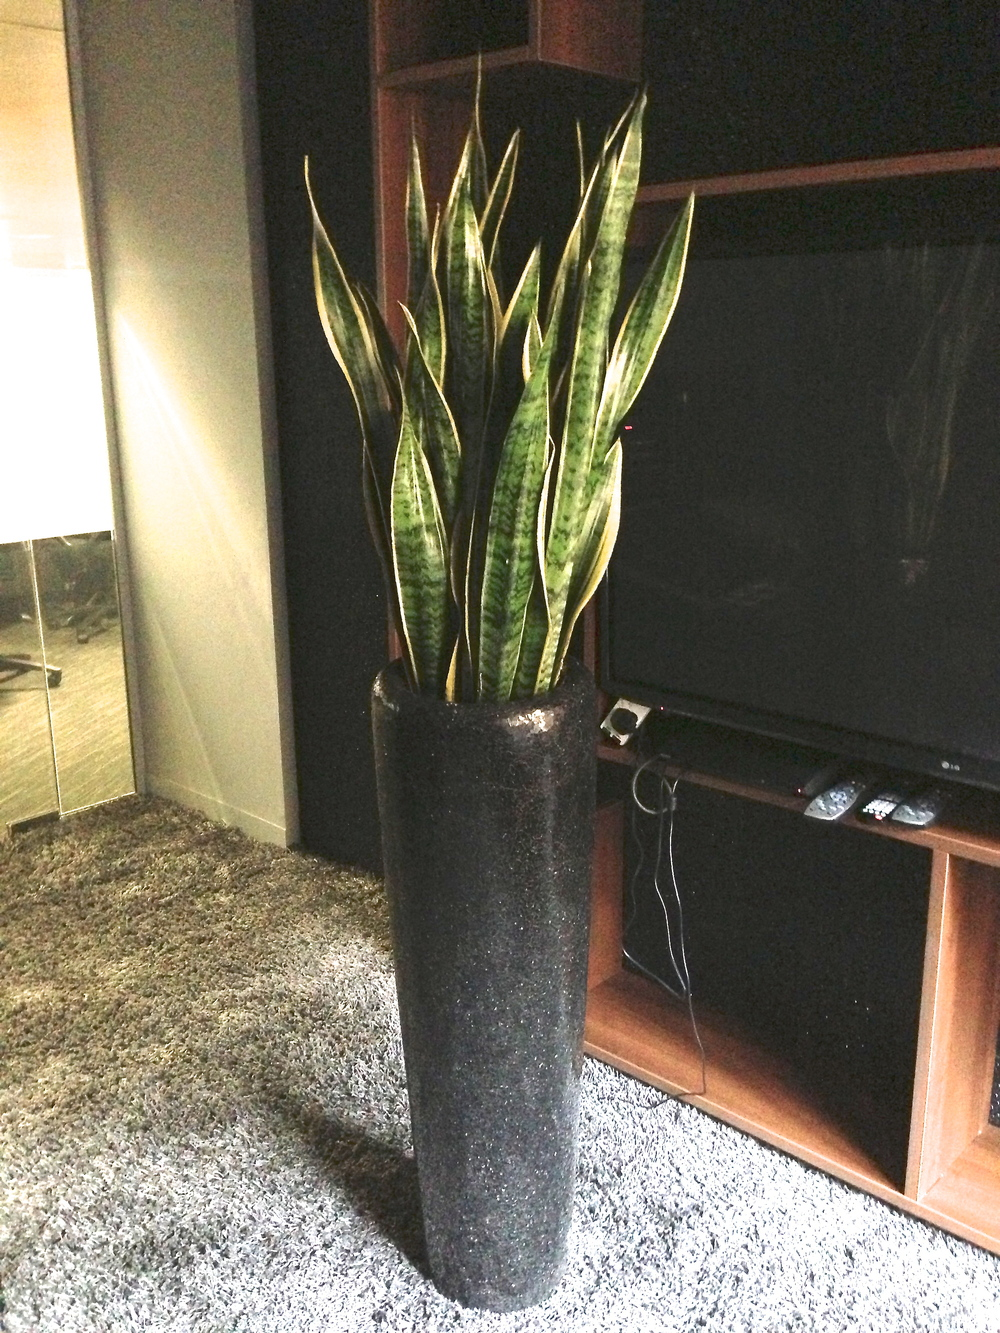 Sansevieria laurentii for Interior designer 02061